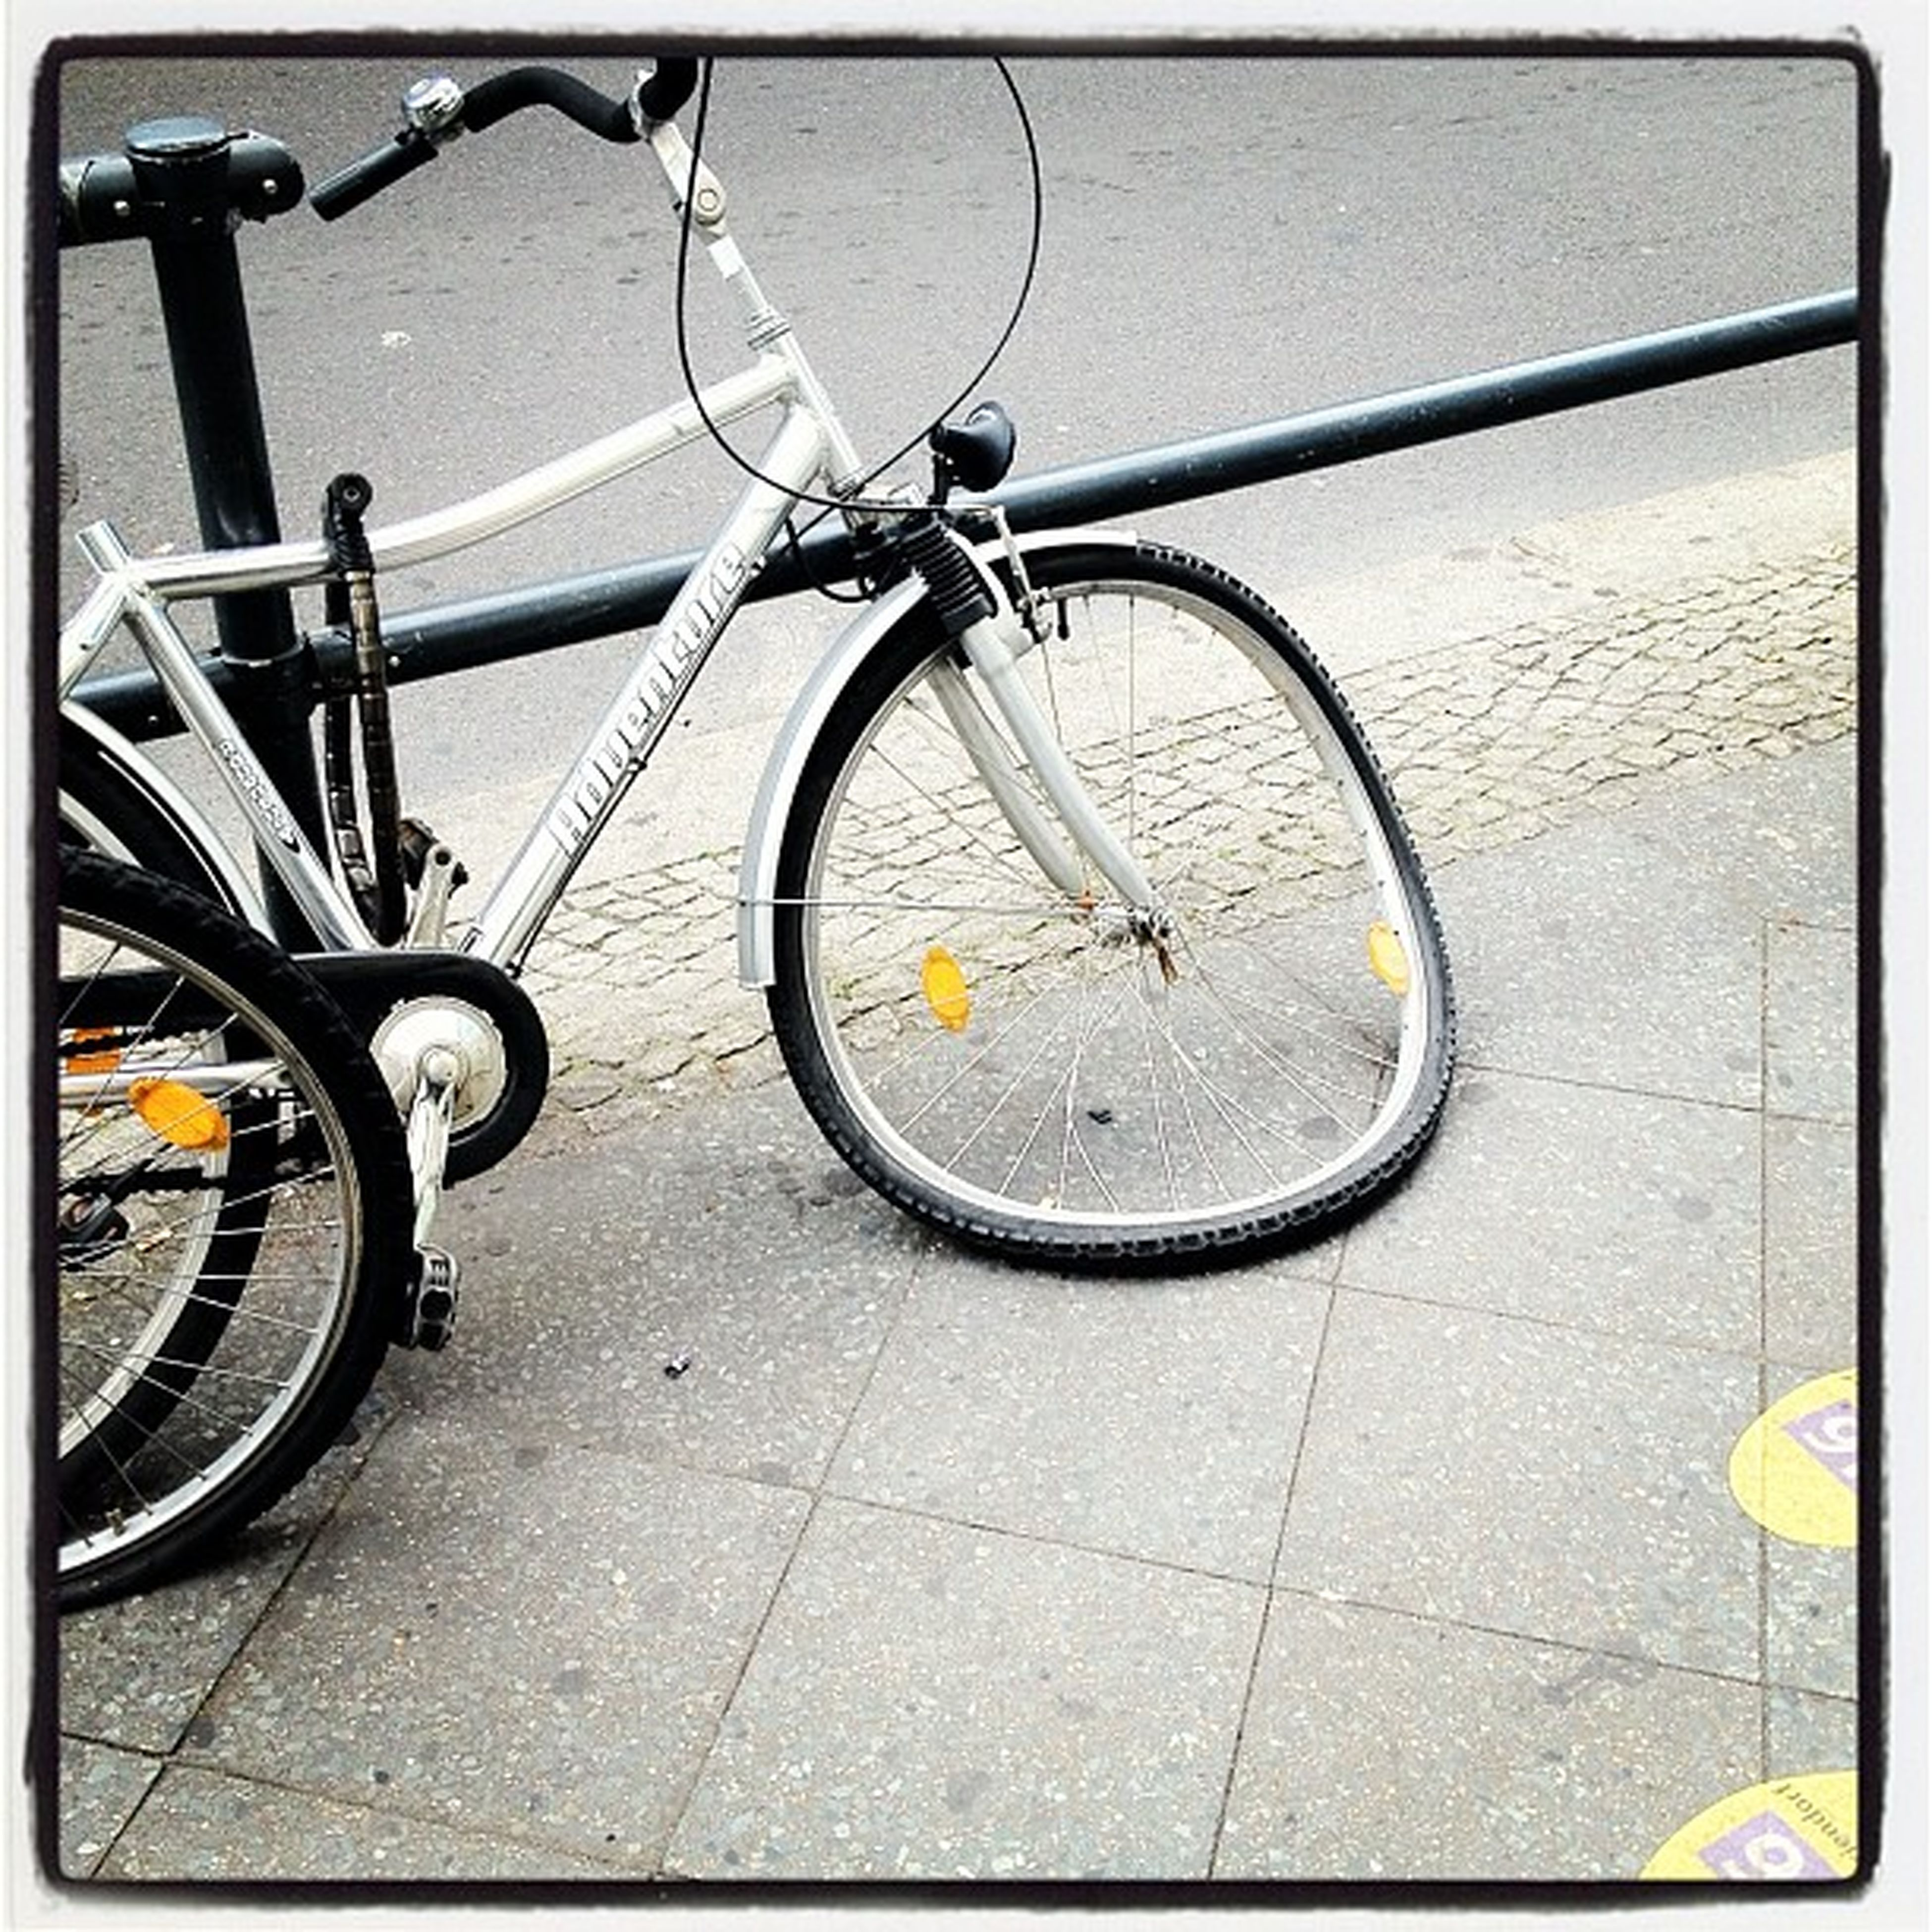 bicycle, transfer print, transportation, mode of transport, auto post production filter, land vehicle, stationary, wheel, parking, street, parked, outdoors, no people, day, sidewalk, wall - building feature, cycle, road, tire, sunlight